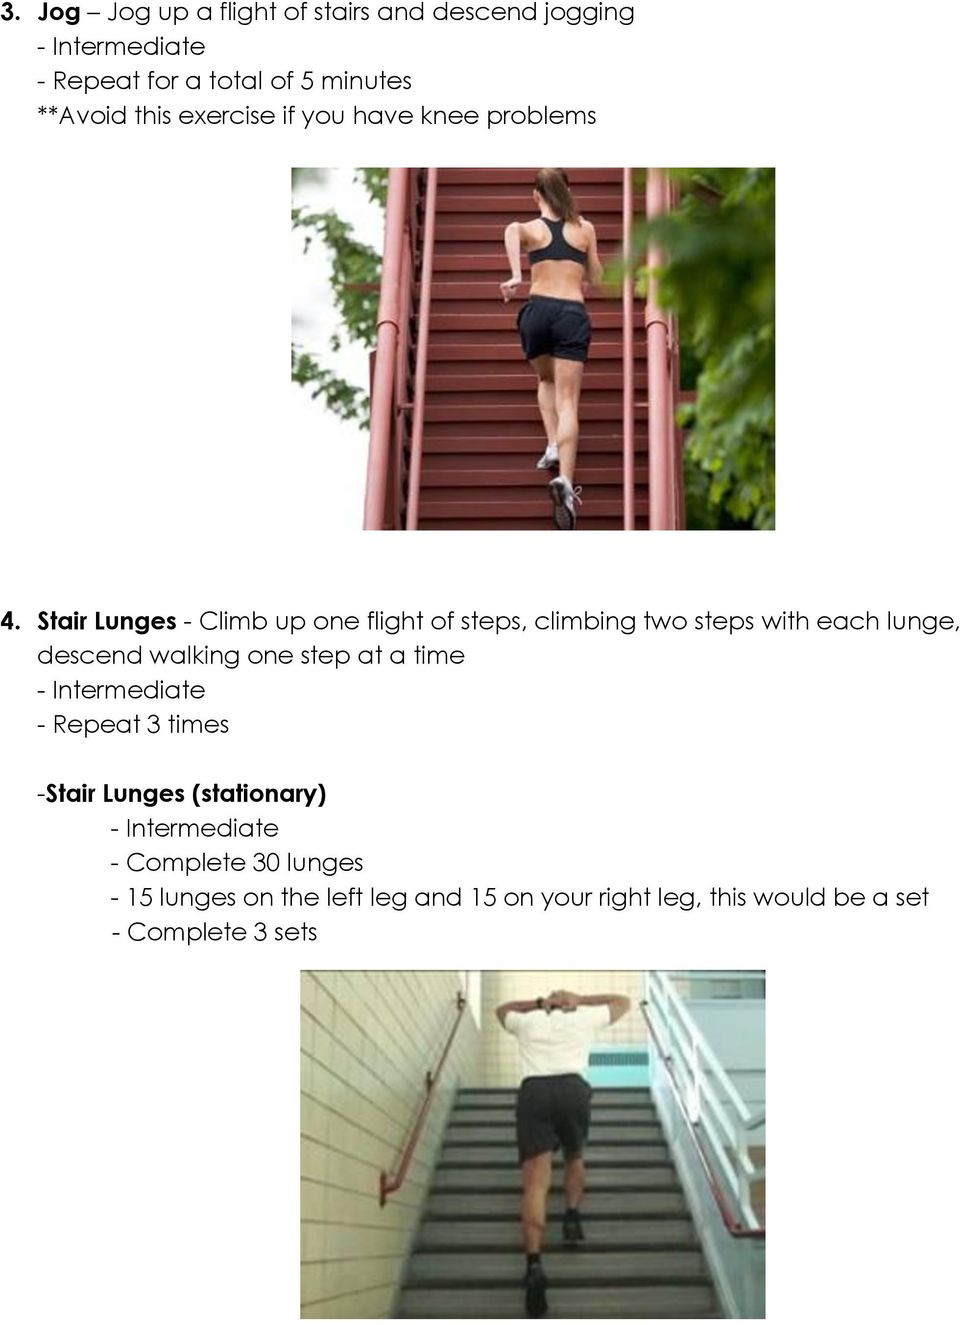 Stair Lunges - Climb up one flight of steps, climbing two steps with each lunge, descend walking one step at a